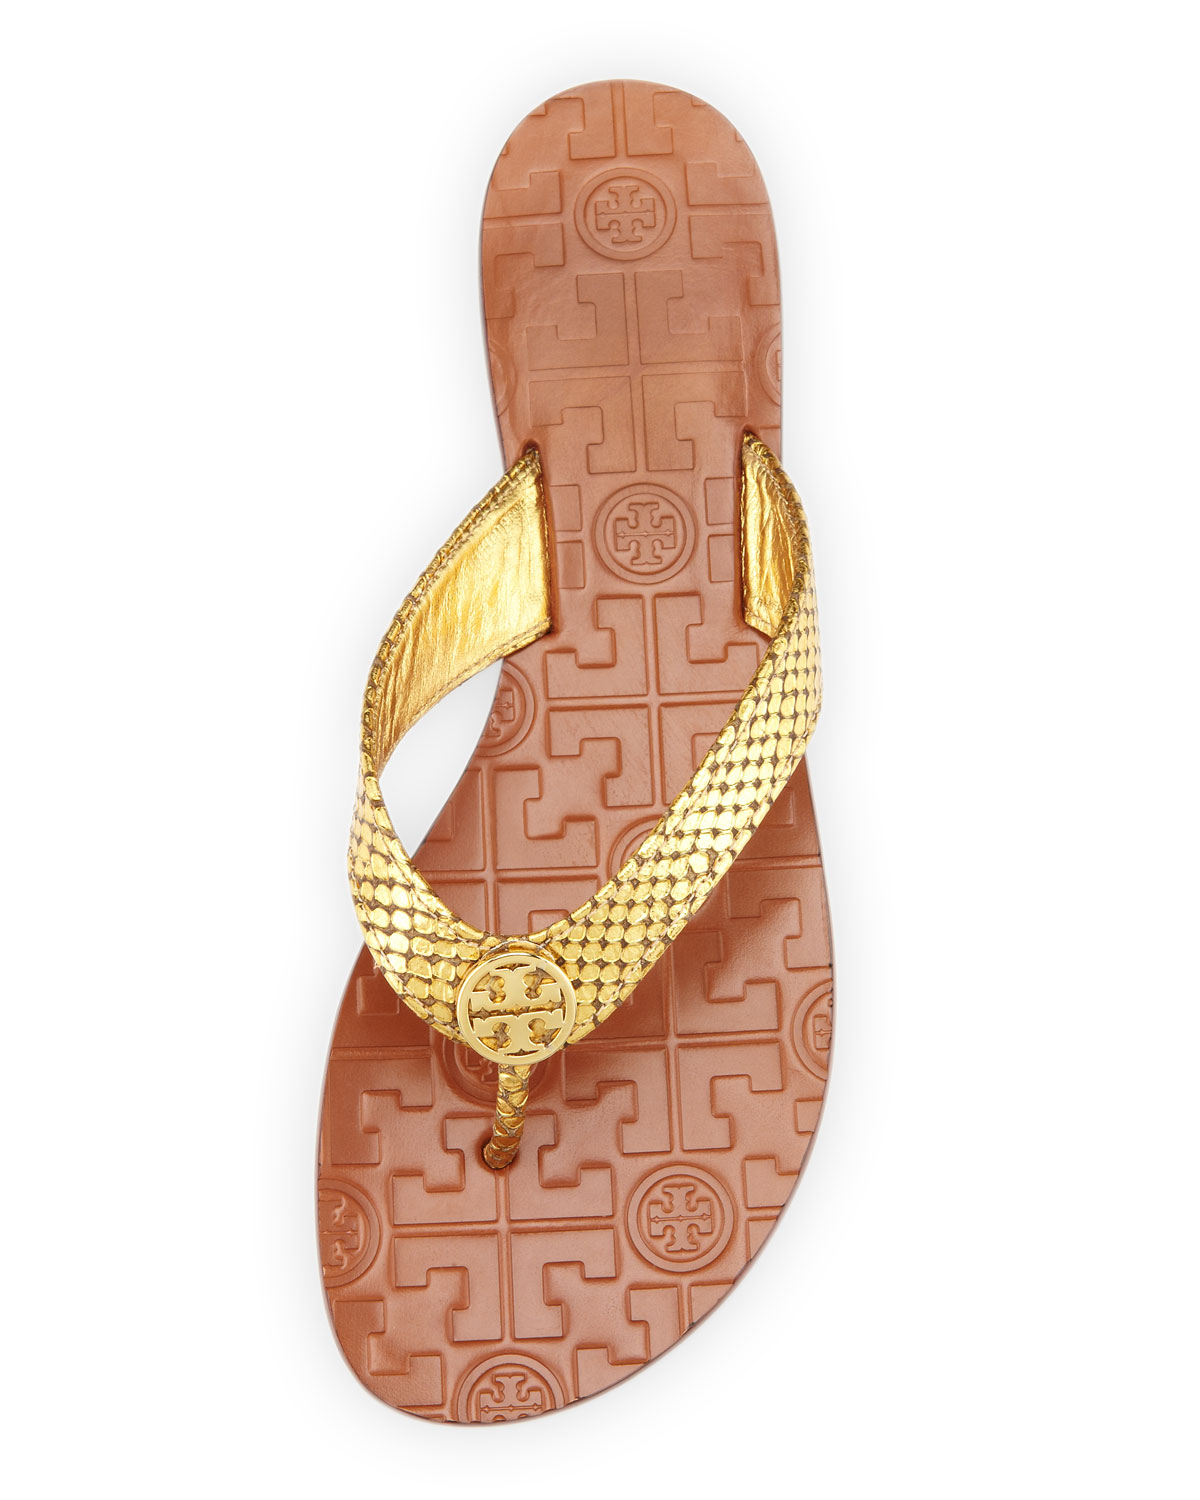 1622c7869f90 sale lyst tory burch thora logo thong sandal in metallic 07282 fd9dd